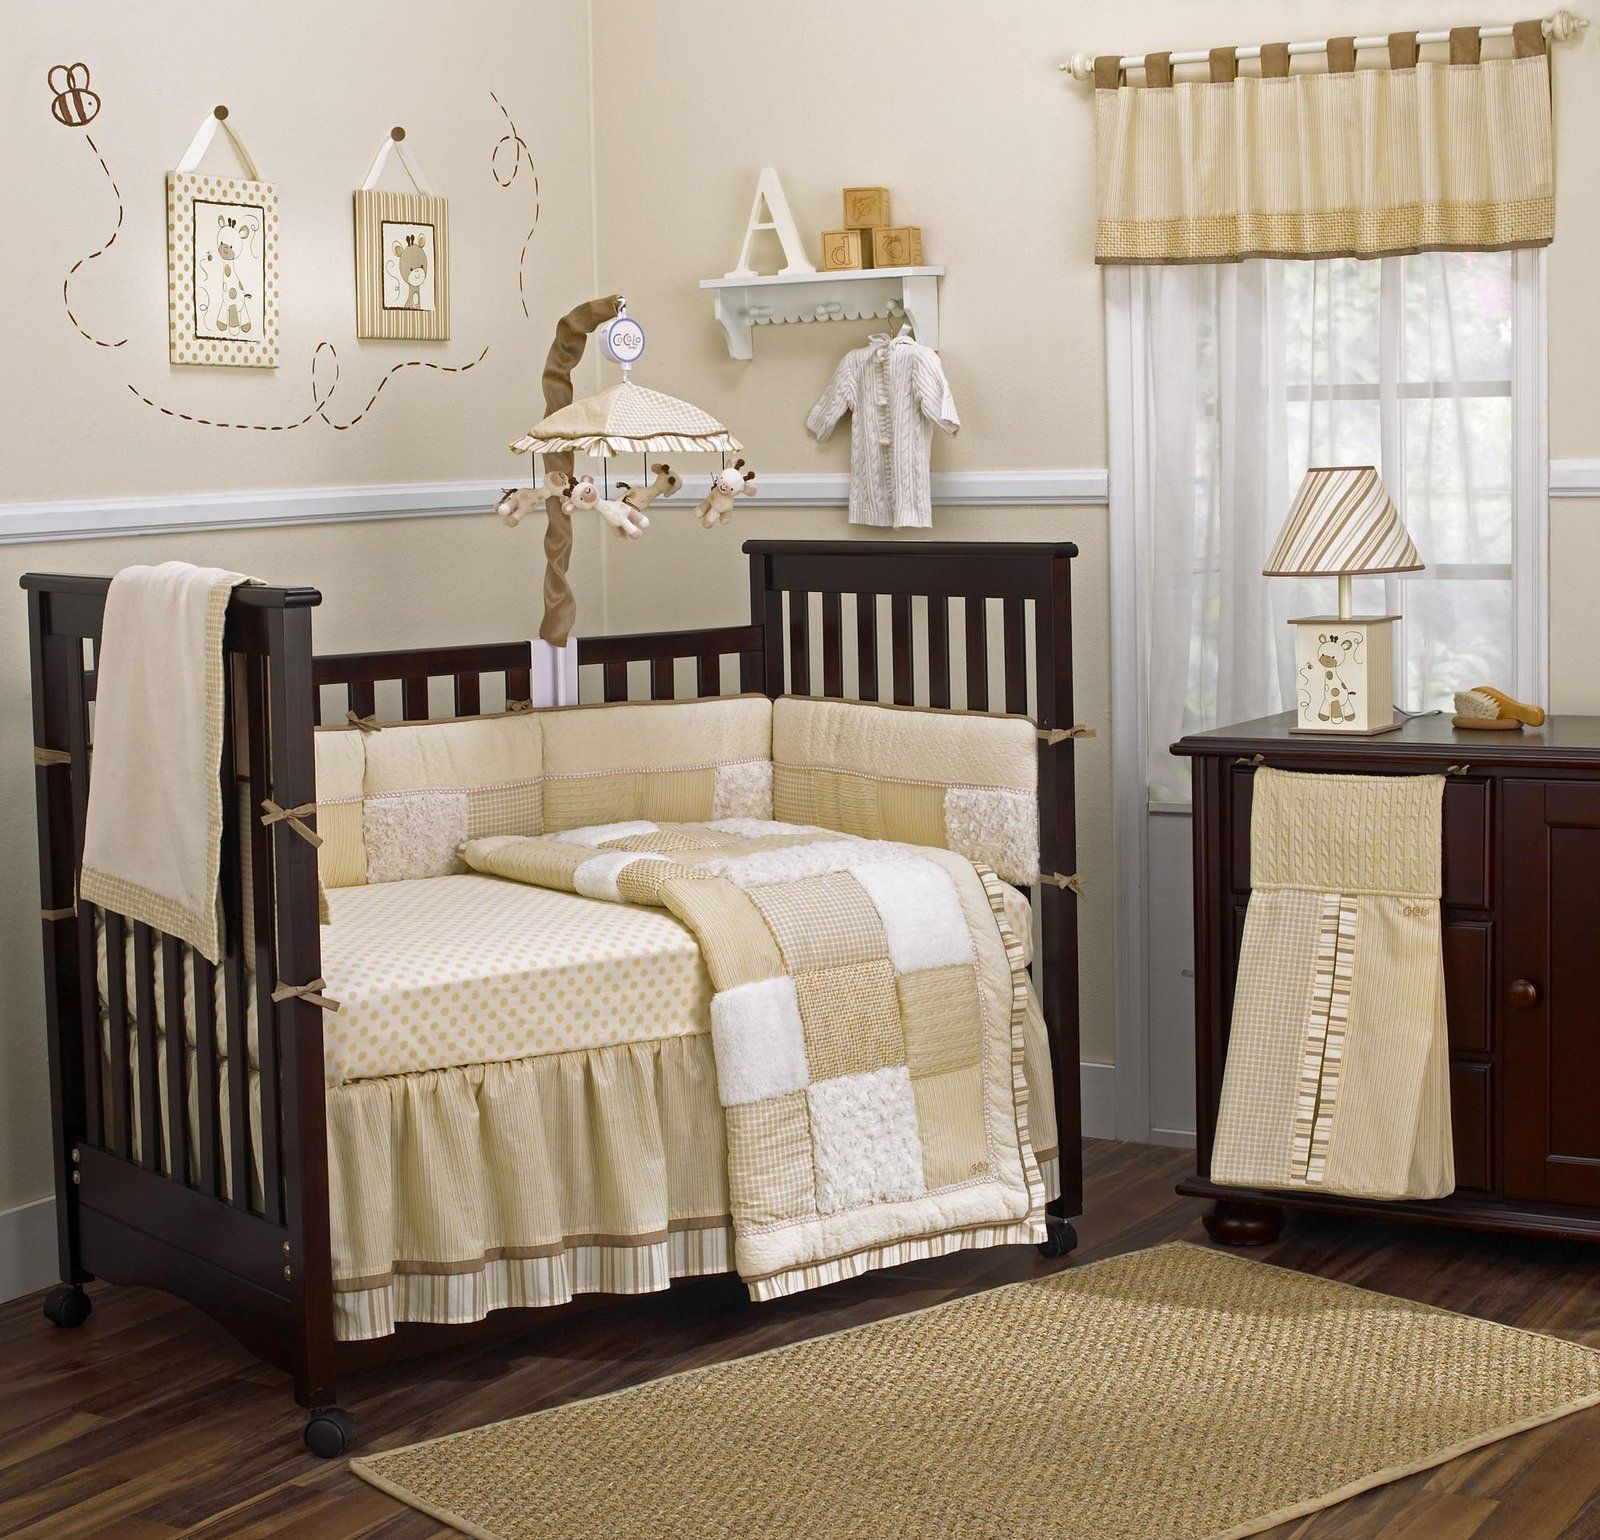 Nursery Decoration Ideas: Unisex Baby room | Neutral nurseries ...